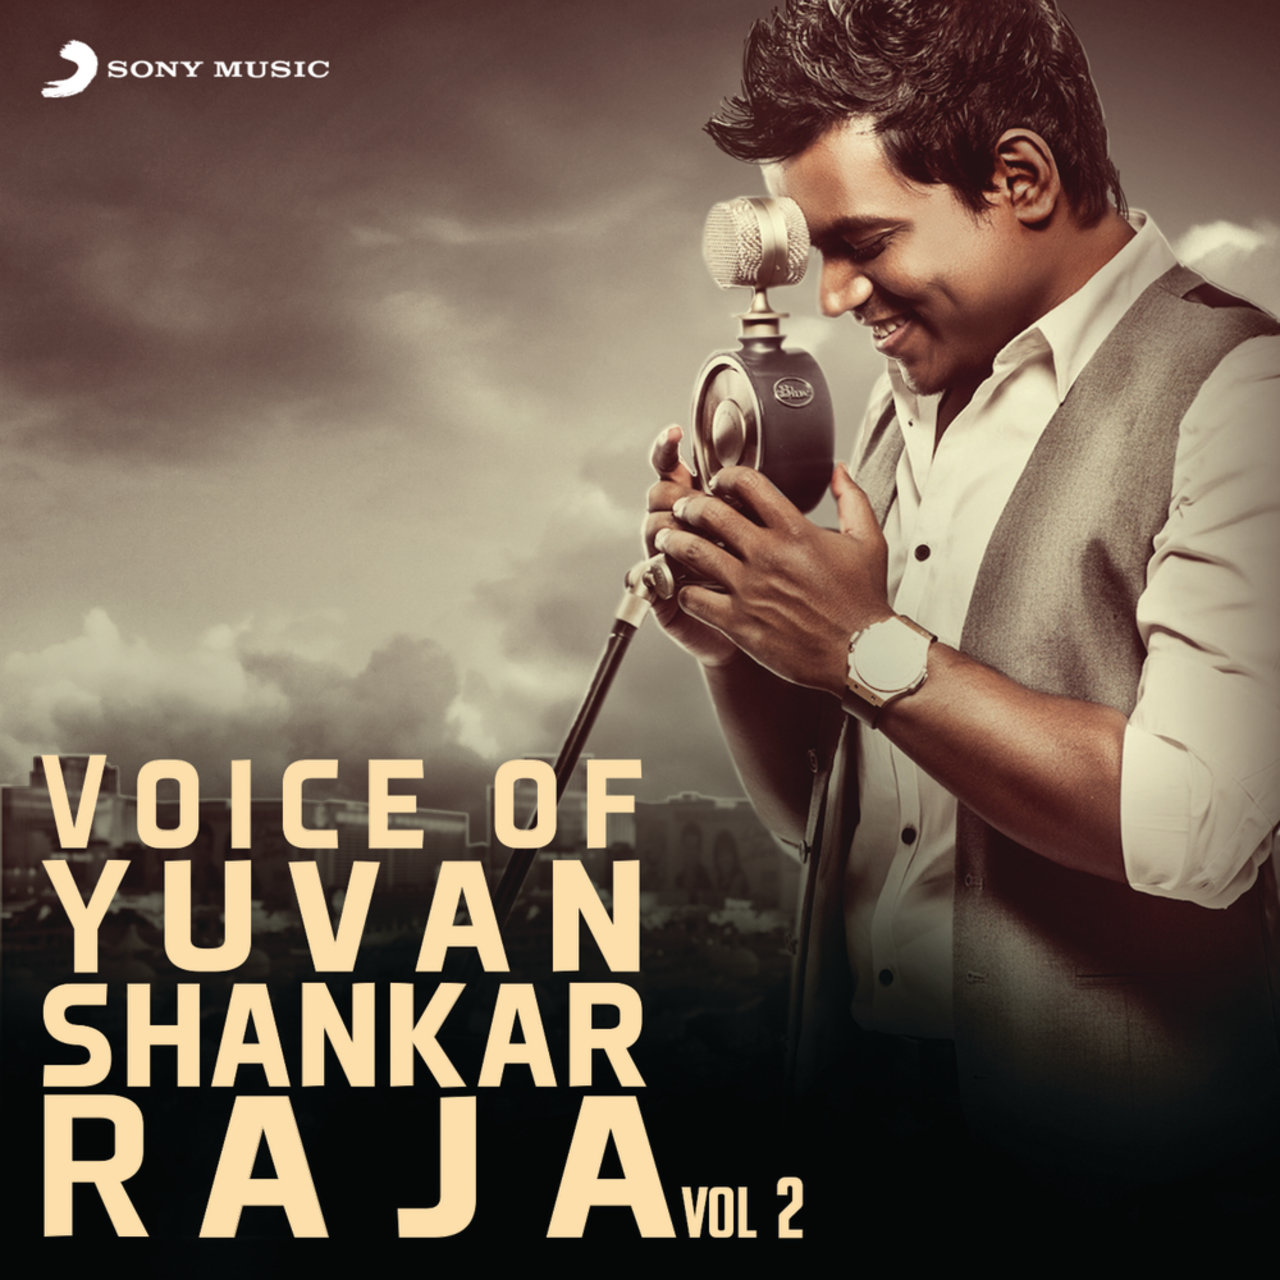 Voice of Yuvanshankar Raja, Vol. 2